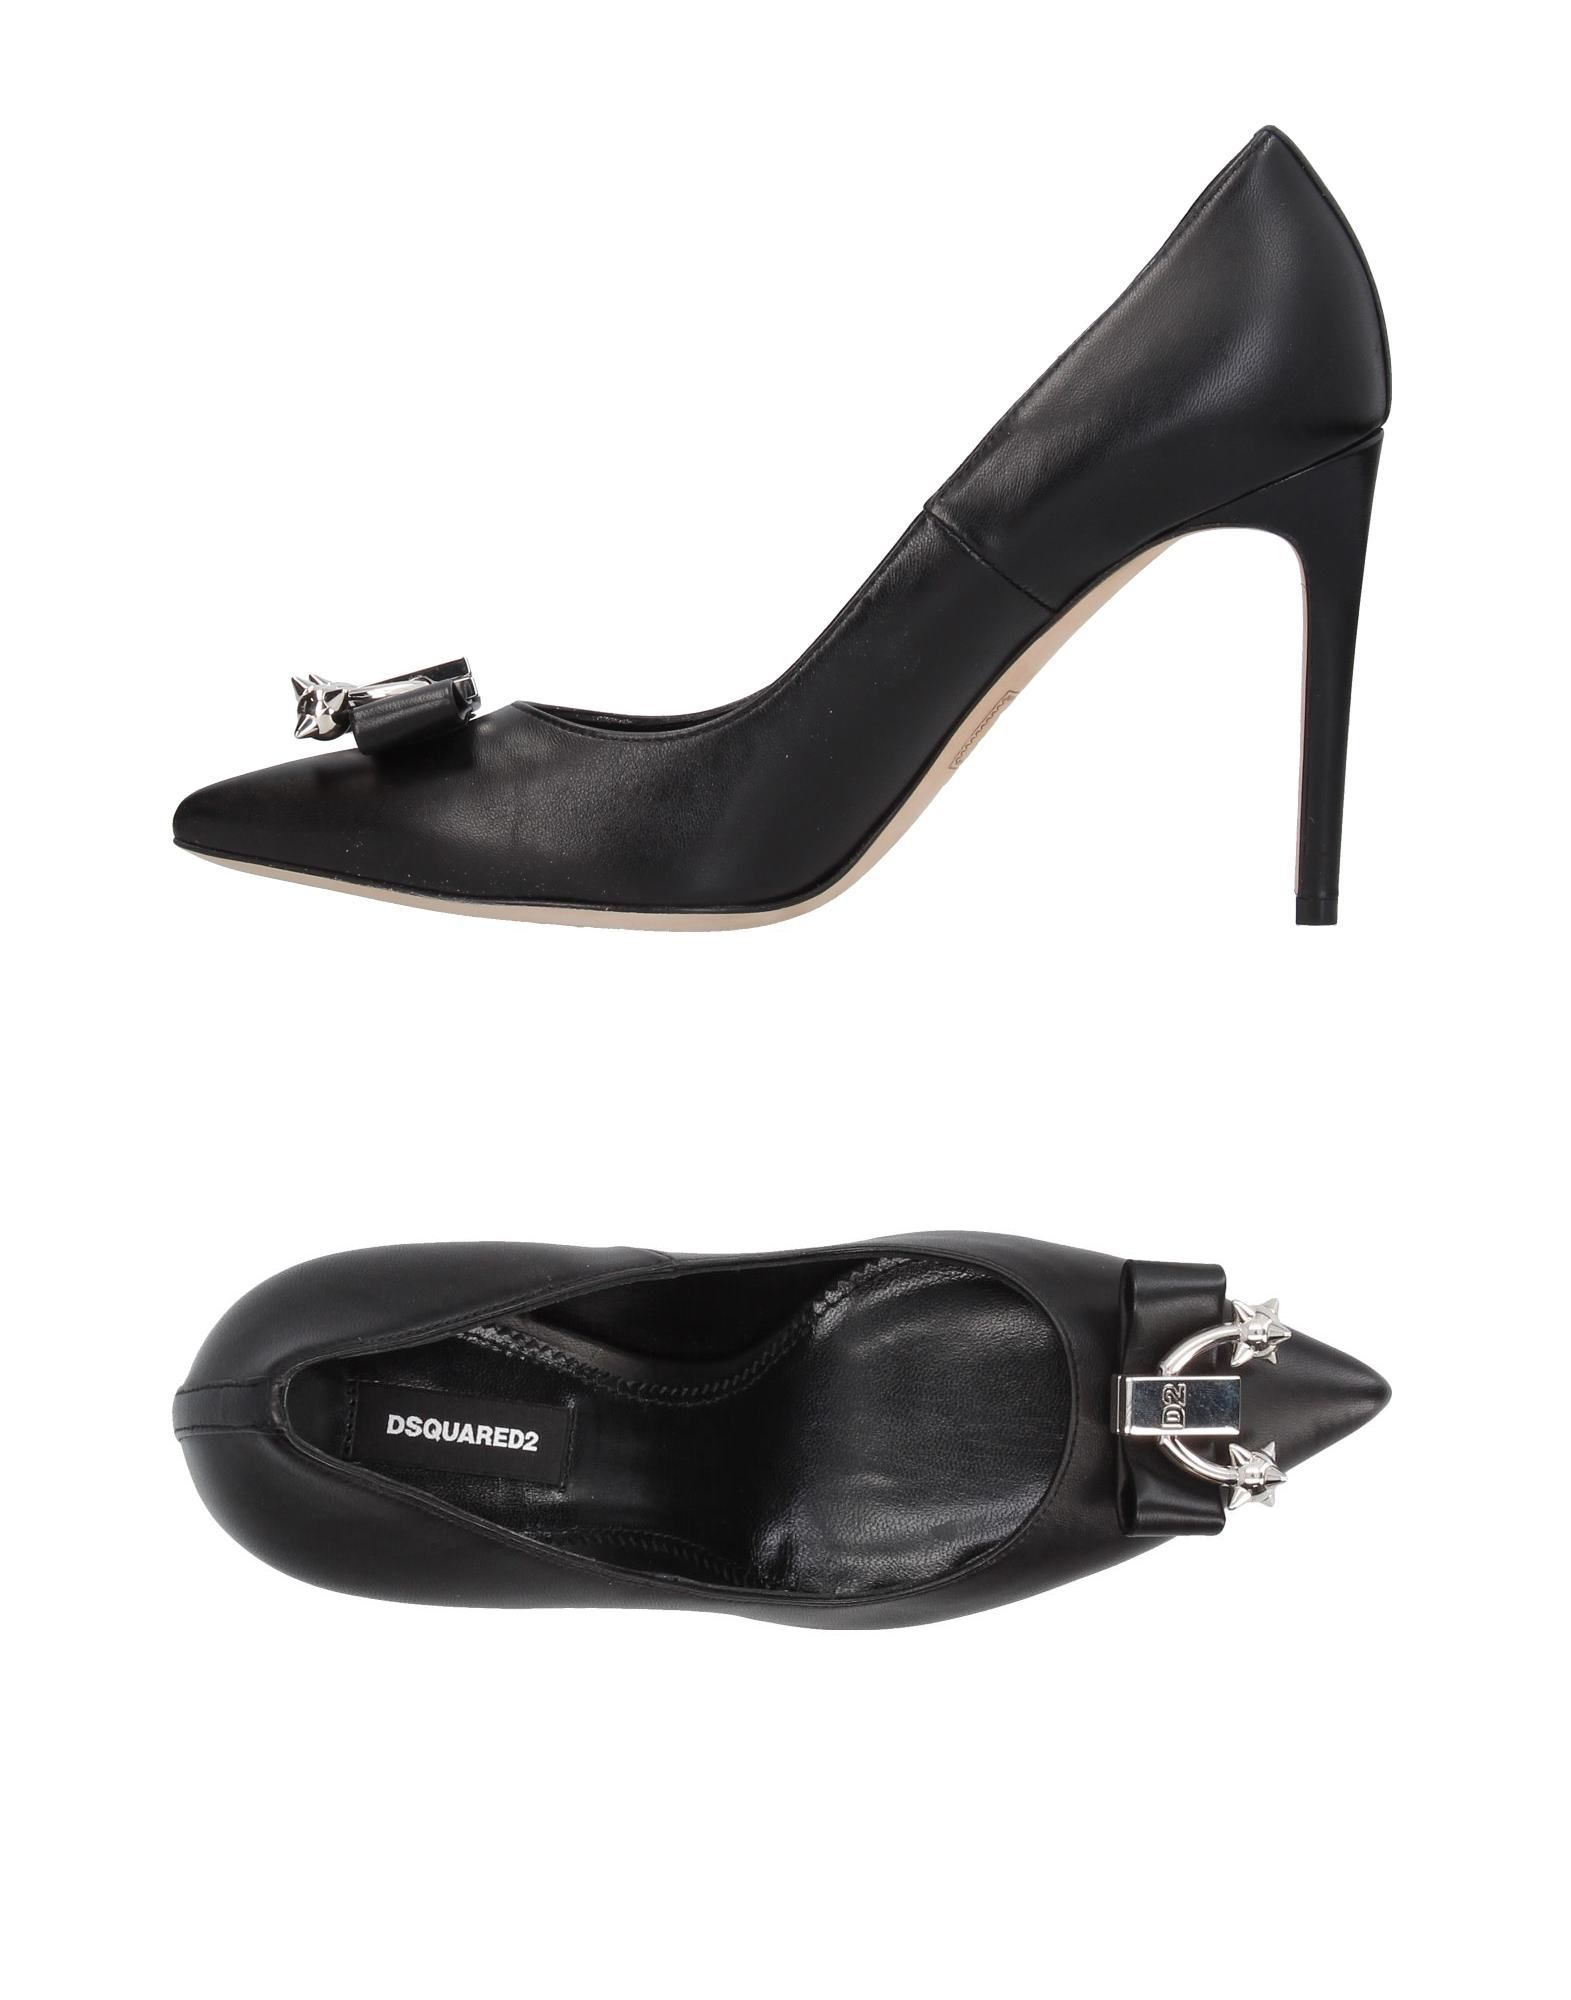 Escarpins Dsquared2 Femme - Escarpins Dsquared2 sur